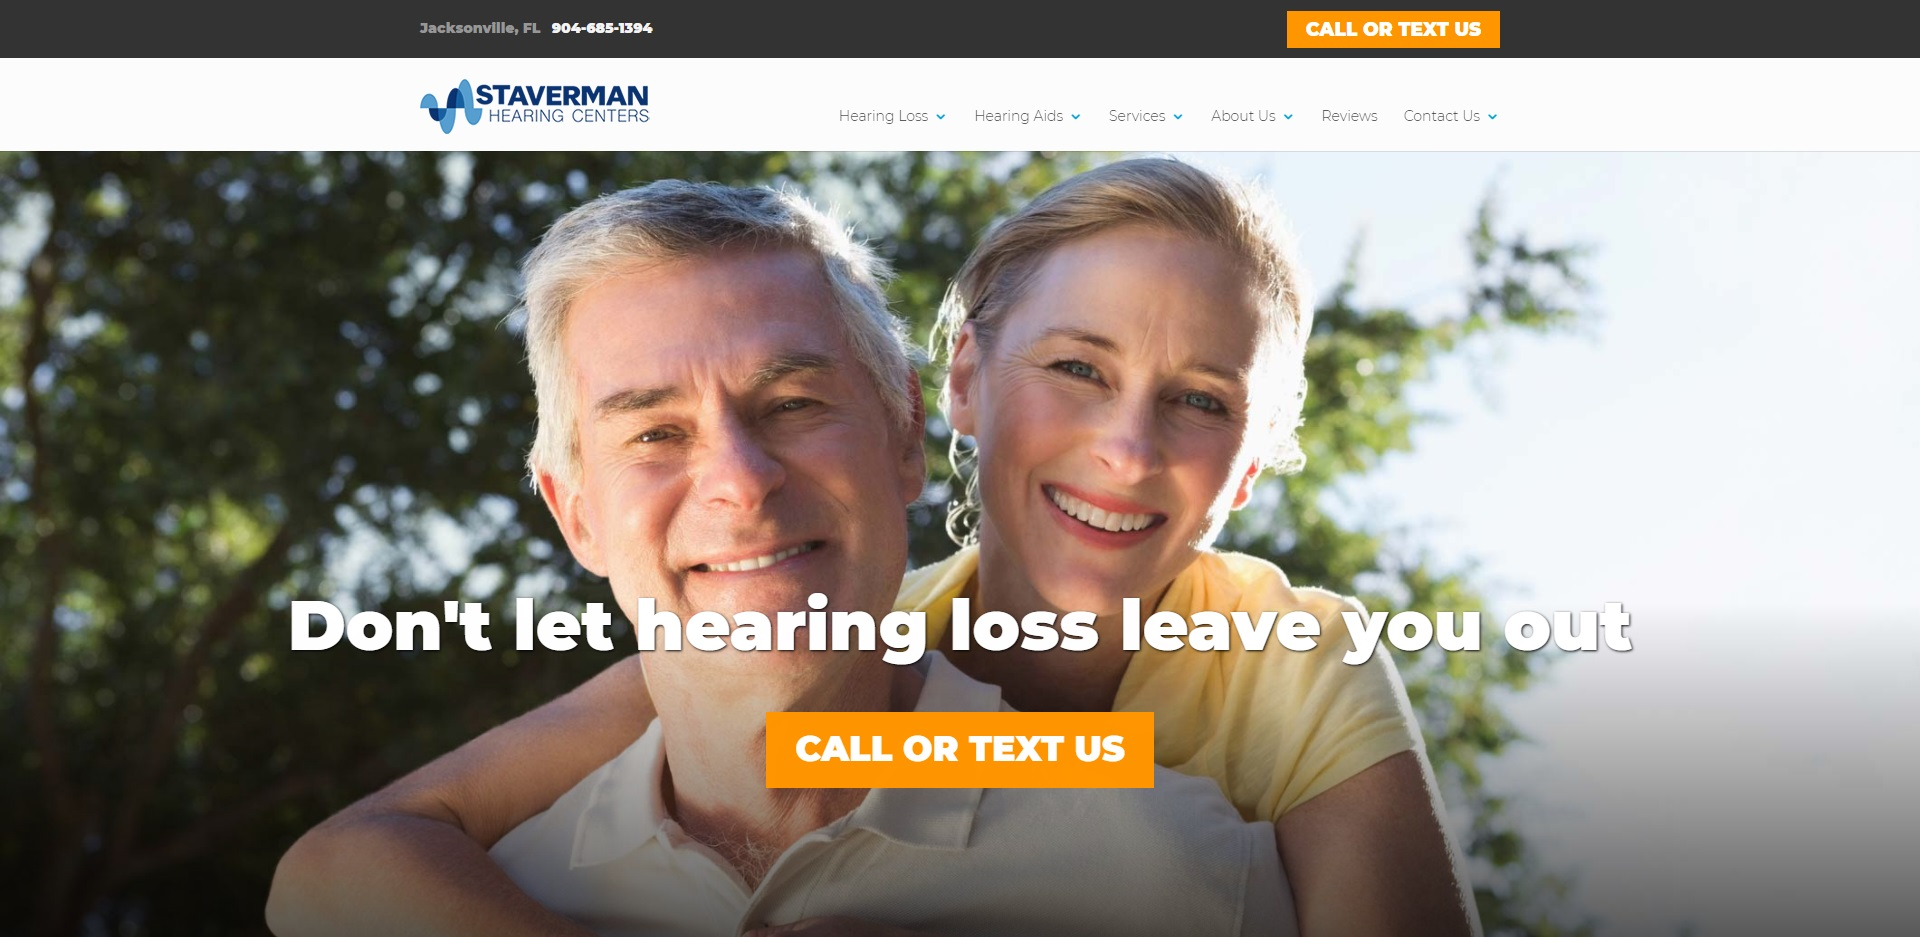 The Best Audiologists in Jacksonville